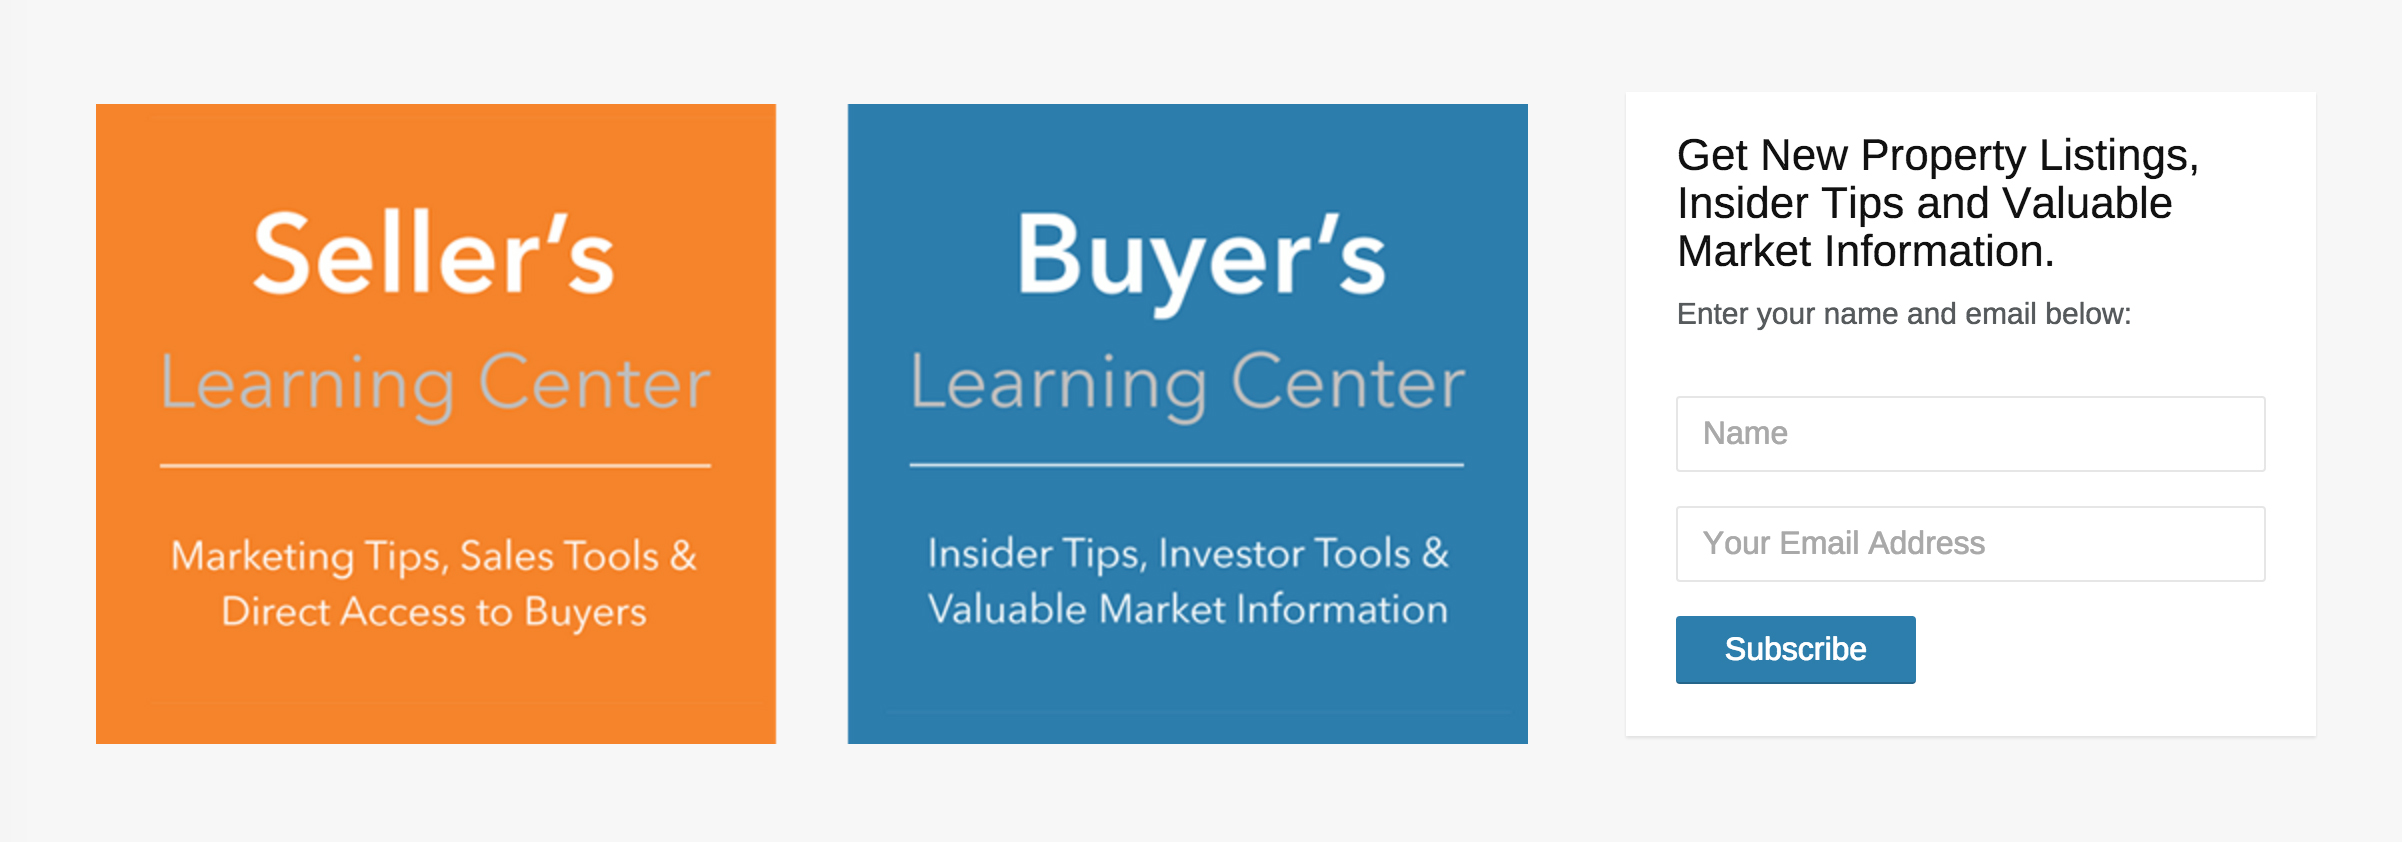 7. Buyers & Sellers Learning Centers